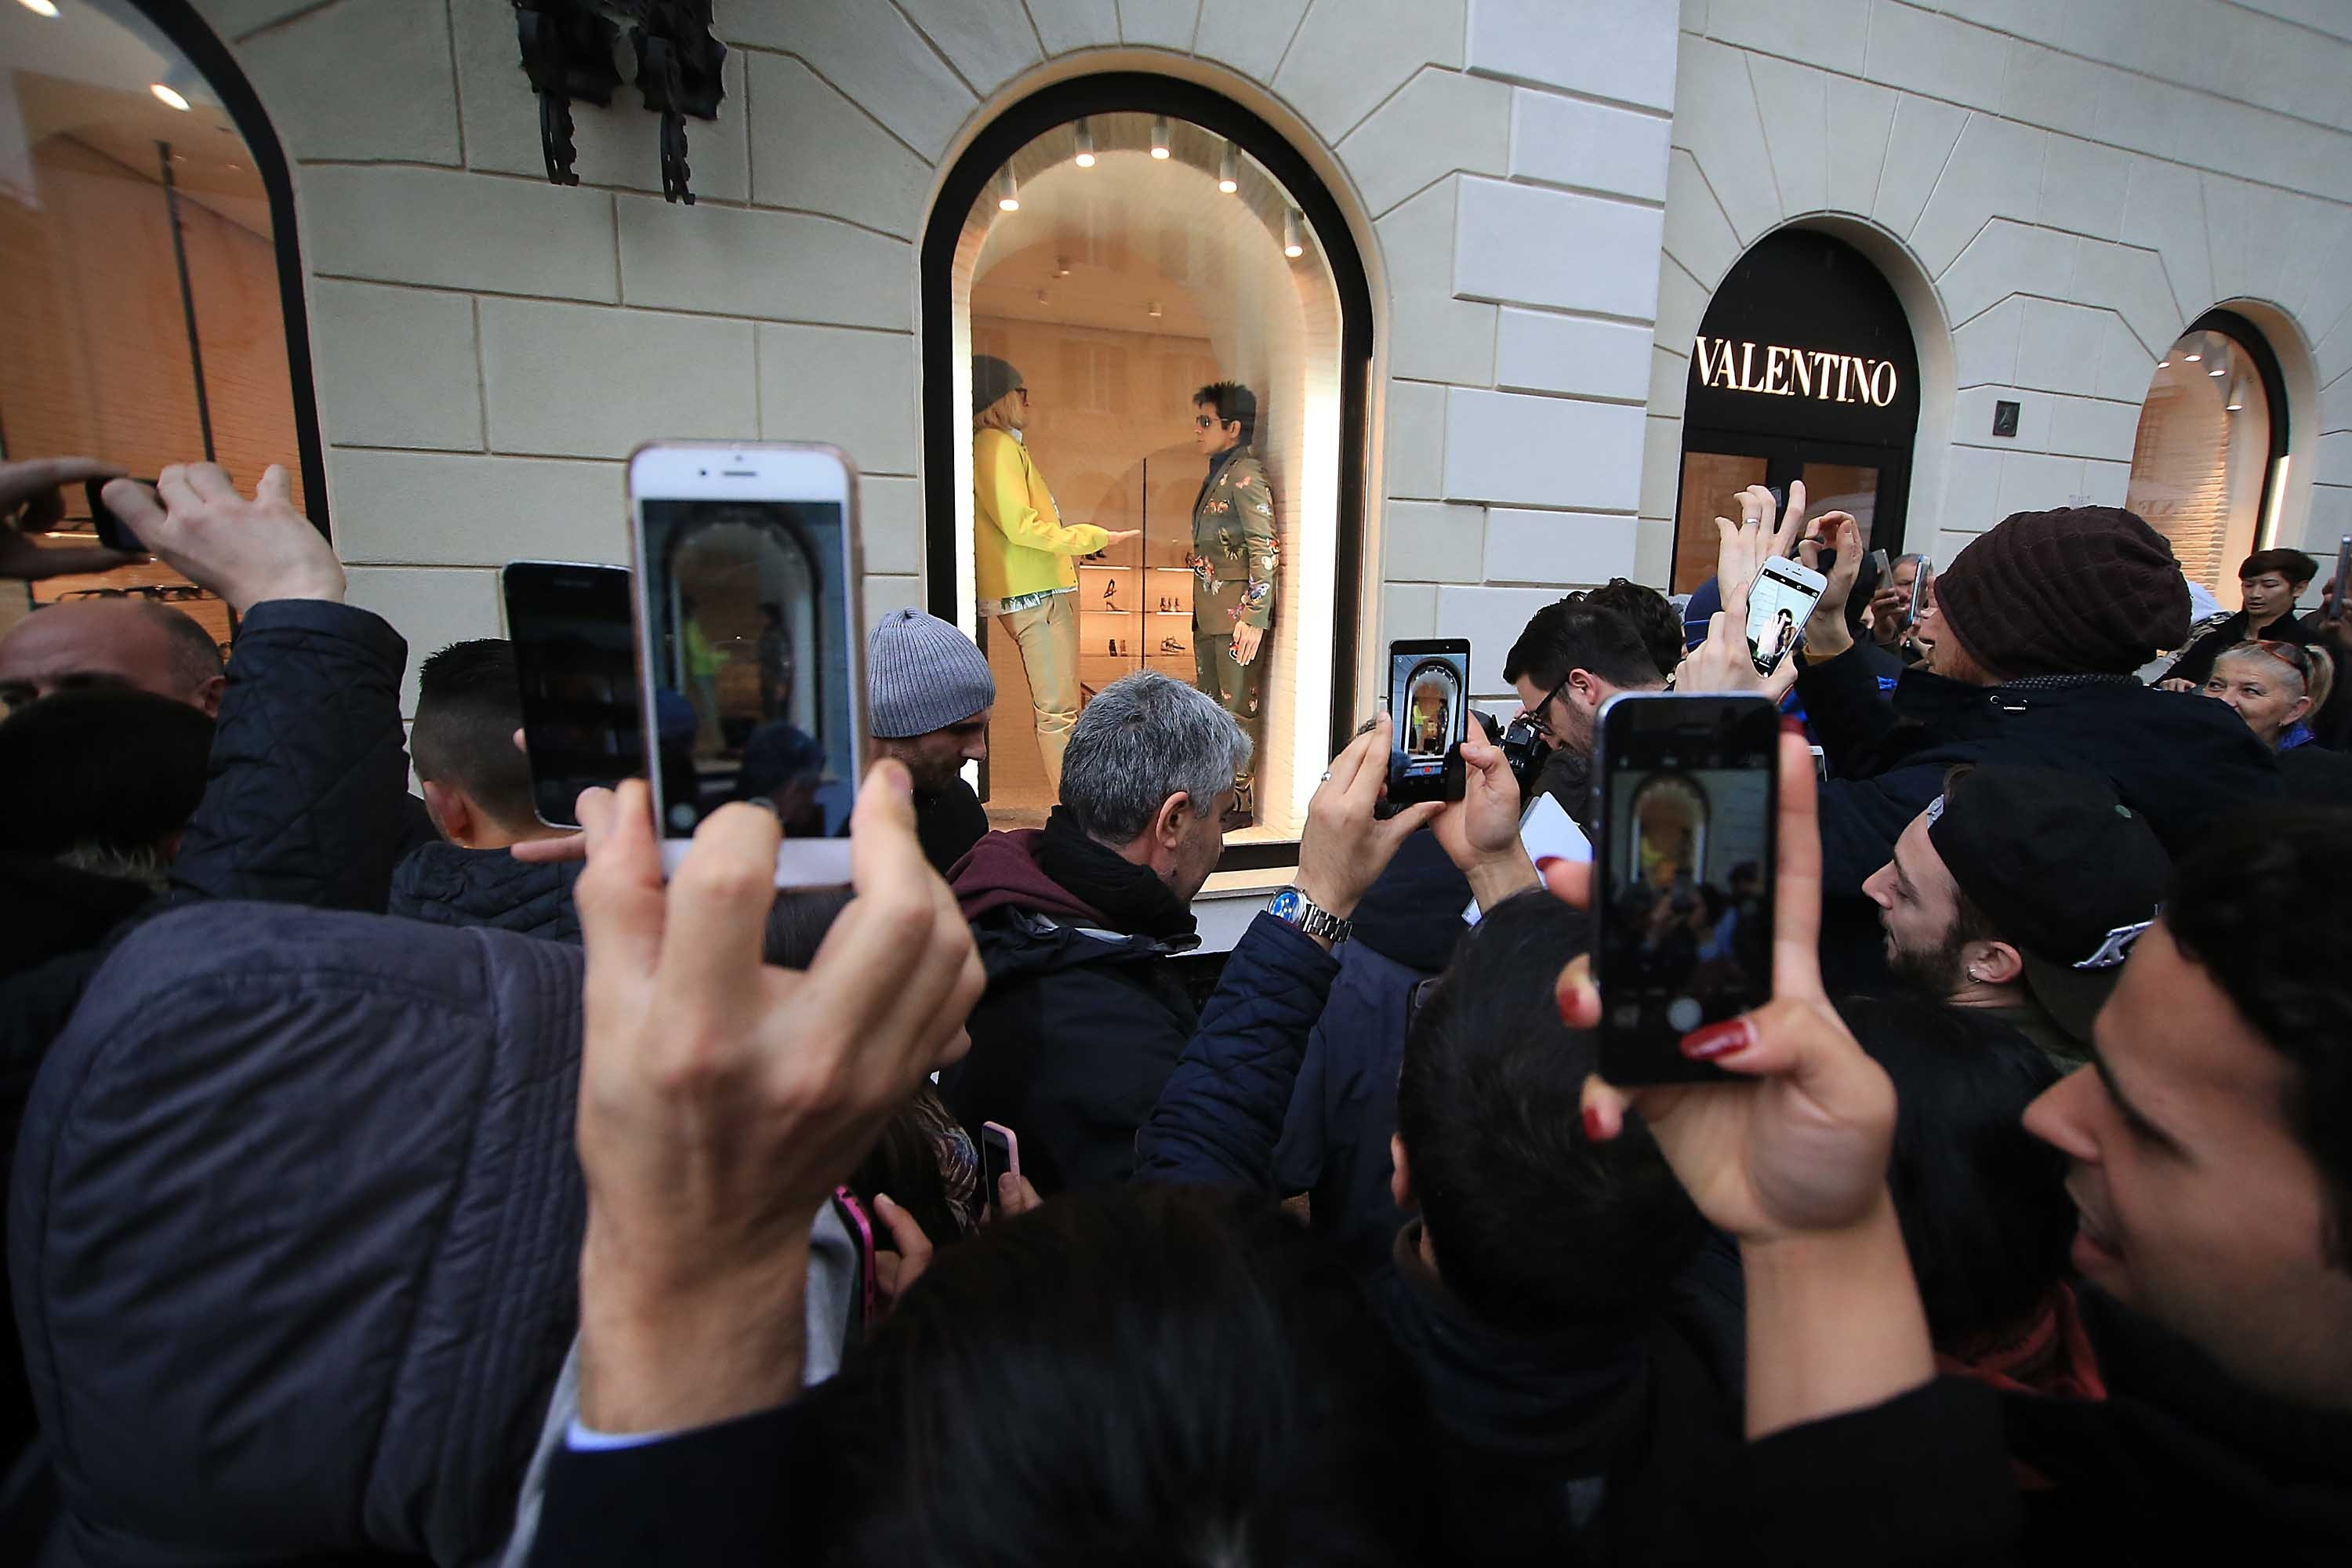 Ben Stiller and Owen Wilson, in the role of Derek Zoolander and Hansel, surprise shoppers by posing in the windows of Valentino in Rome Credit: IPA/WENN.com